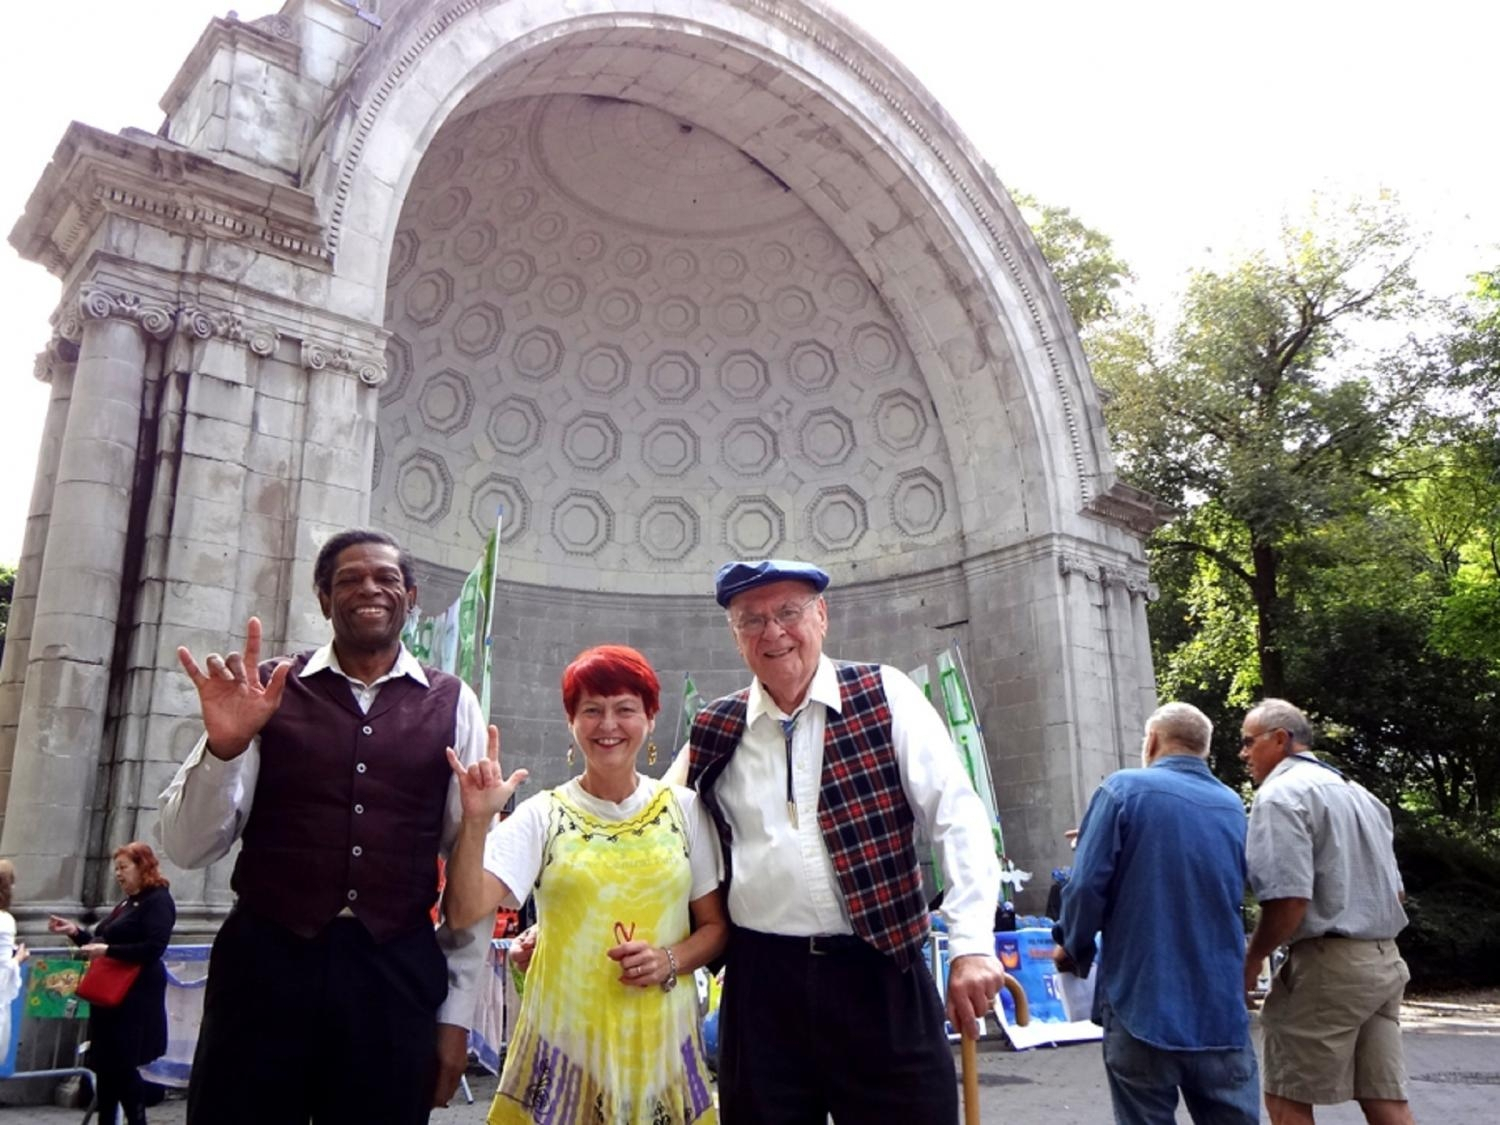 Gerald Small, Leslie Fanelli, William Dembaugh Performing in Central Park, NYC